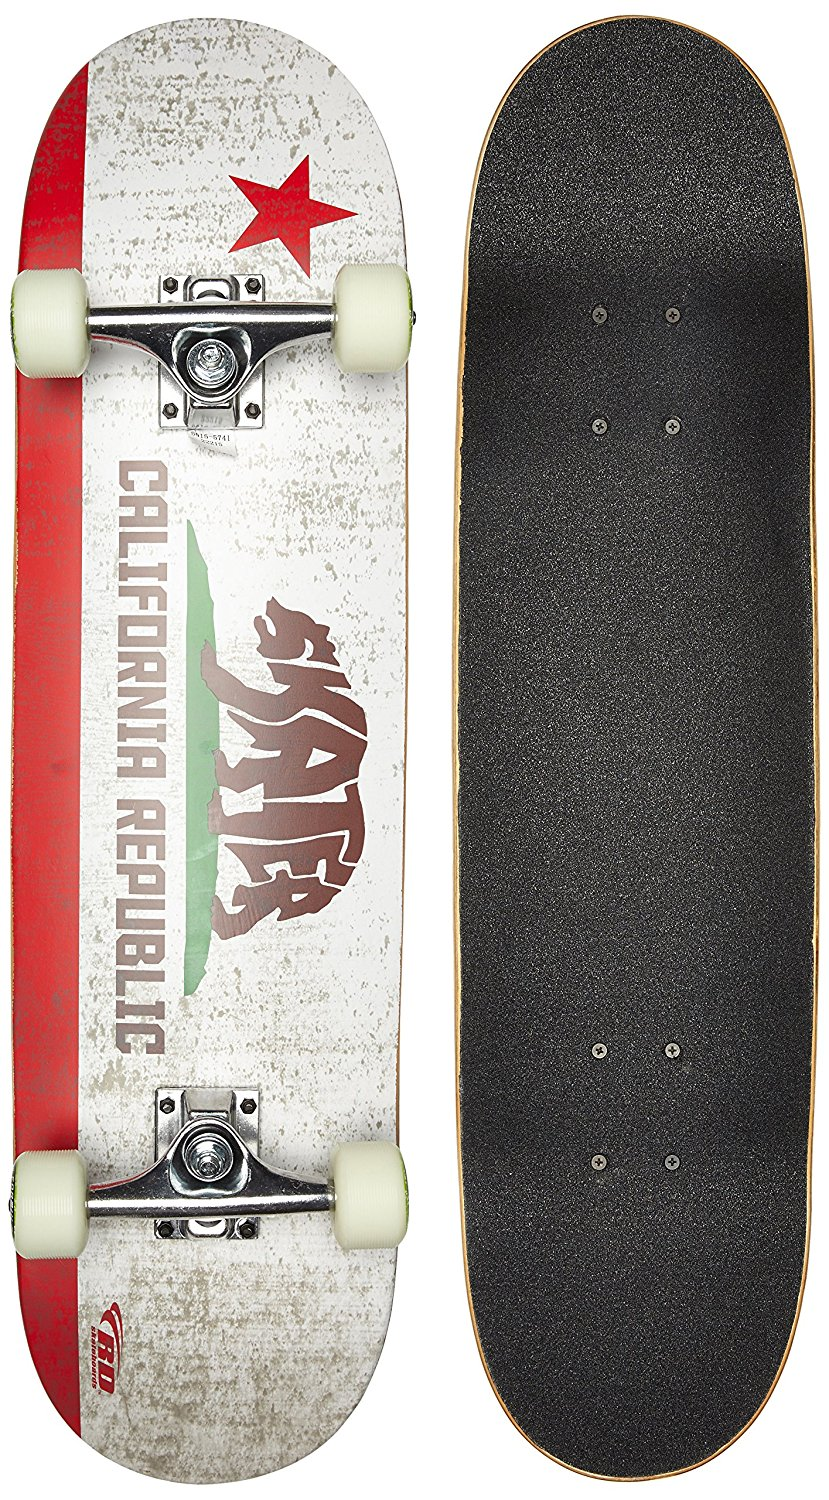 Chinese Maple Skateboard Aluminium Trucks Skate Board